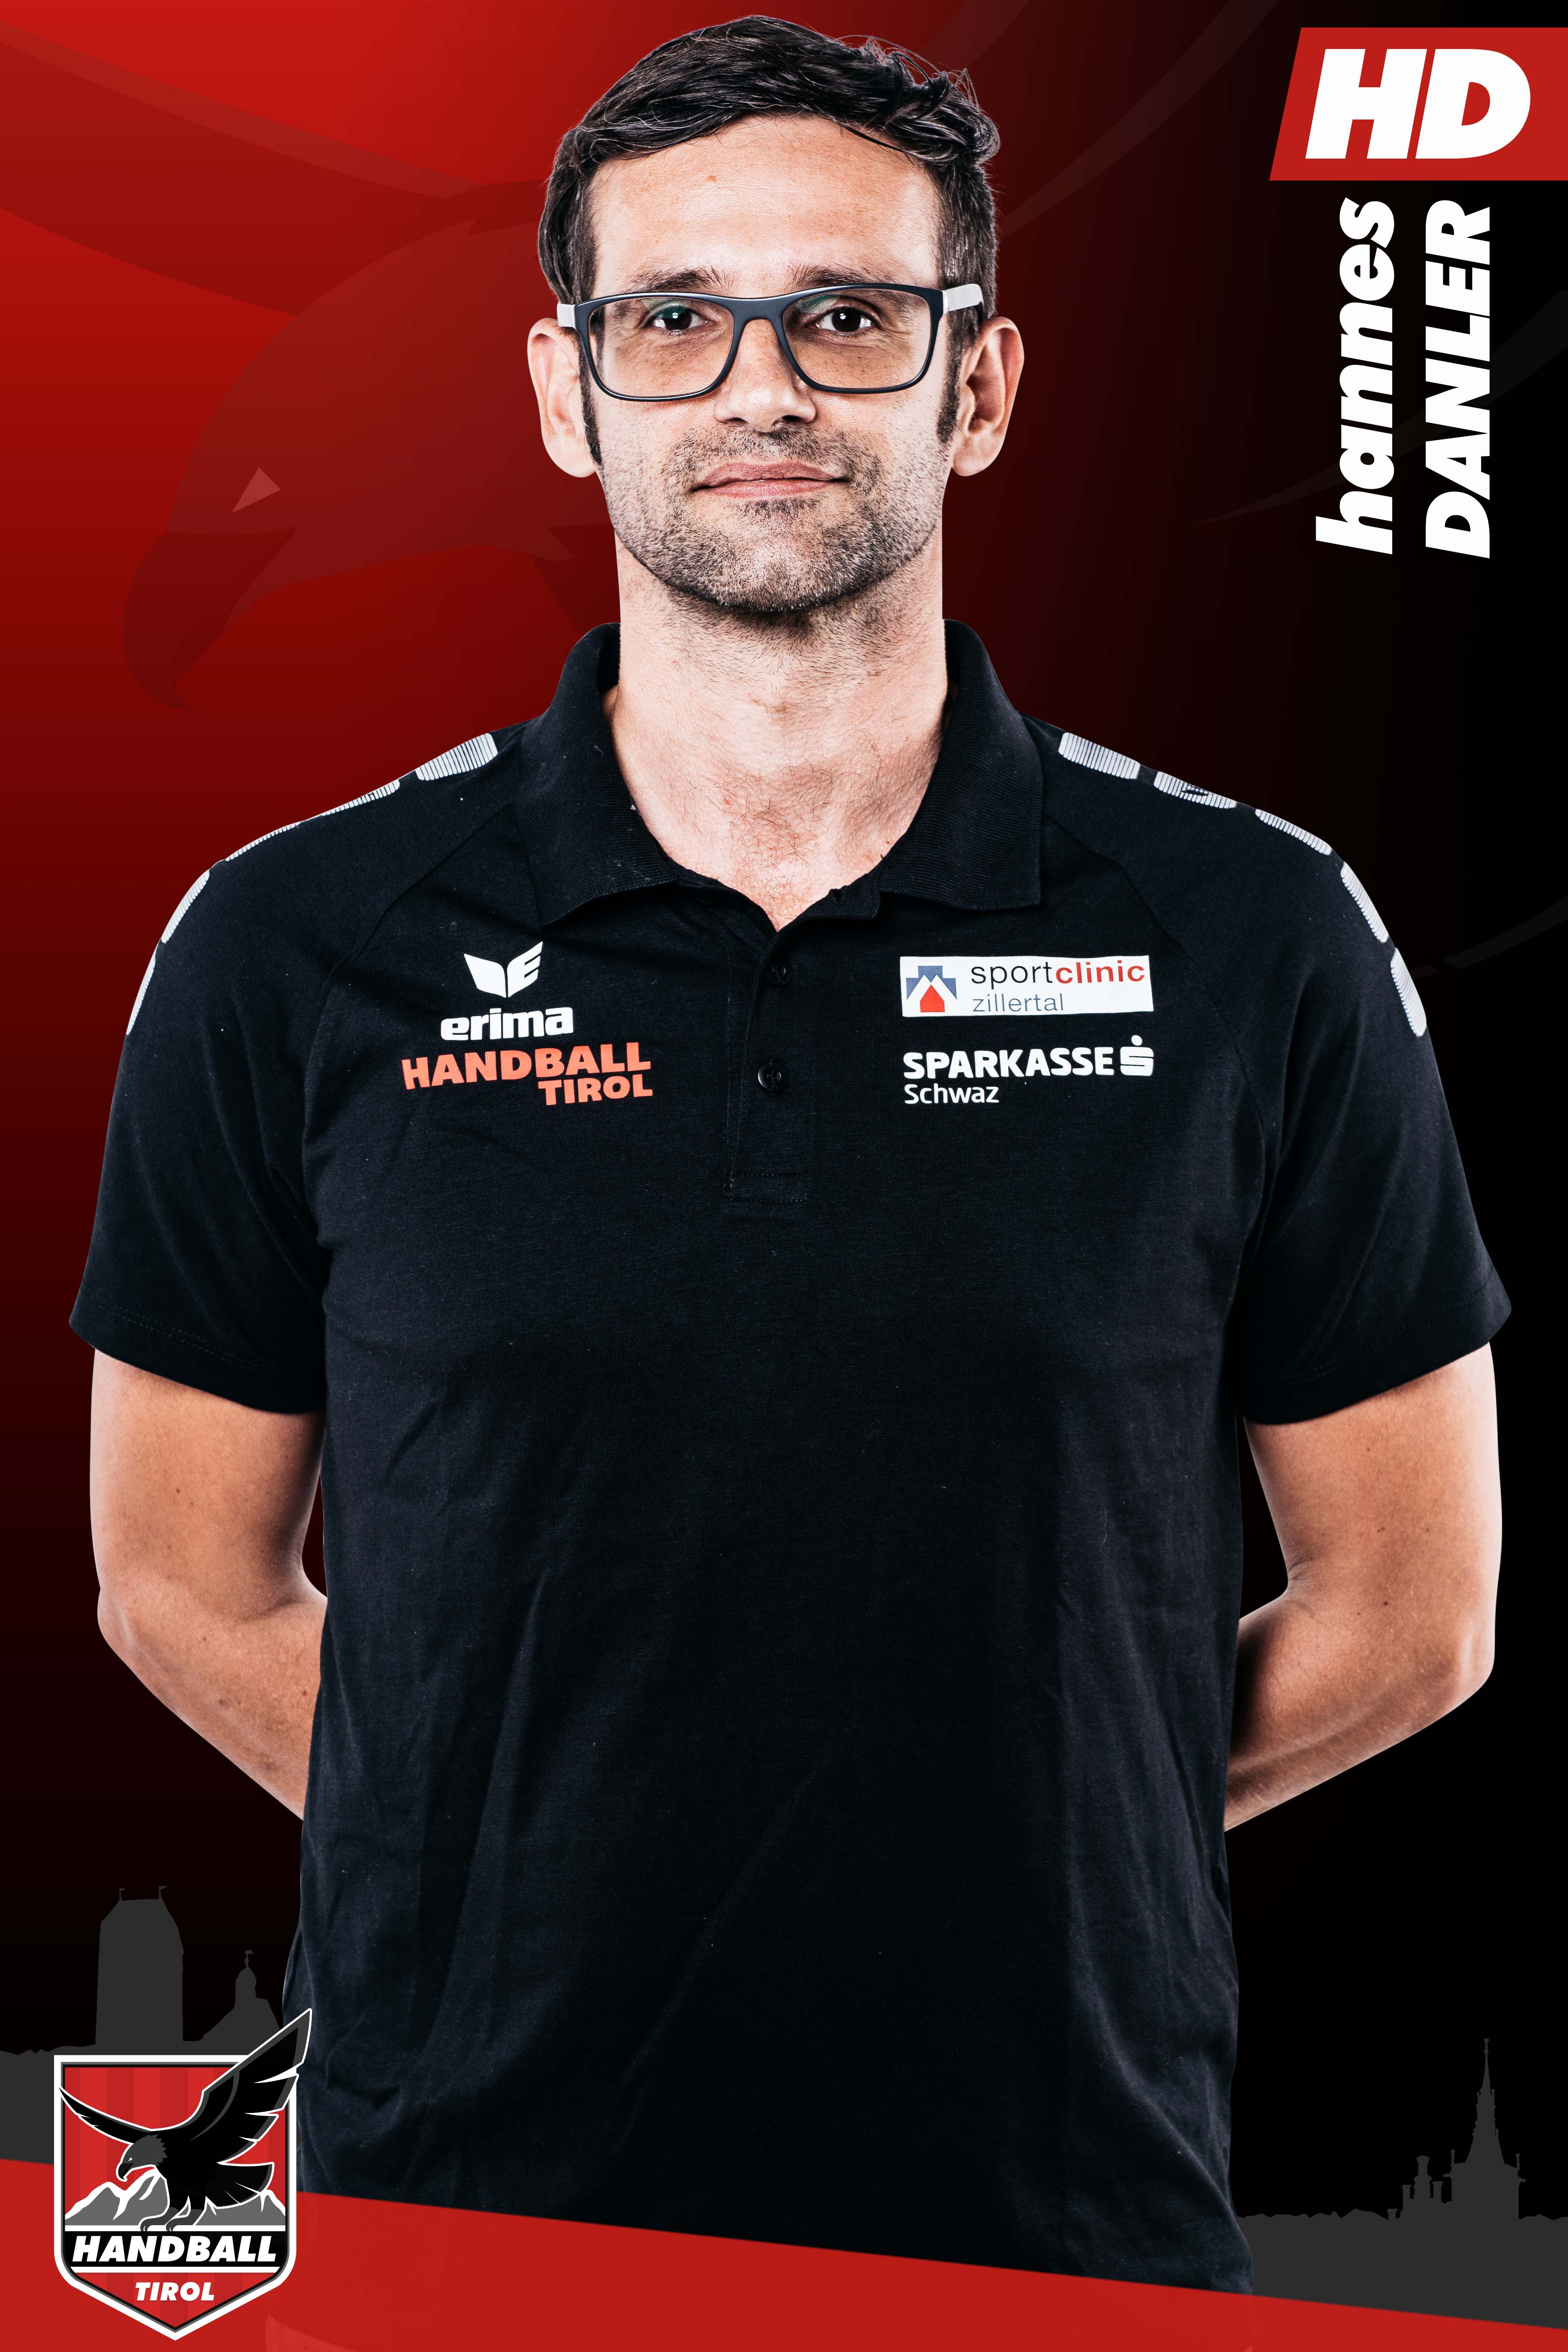 Hannes Dannler |AUT| Athletikcoach